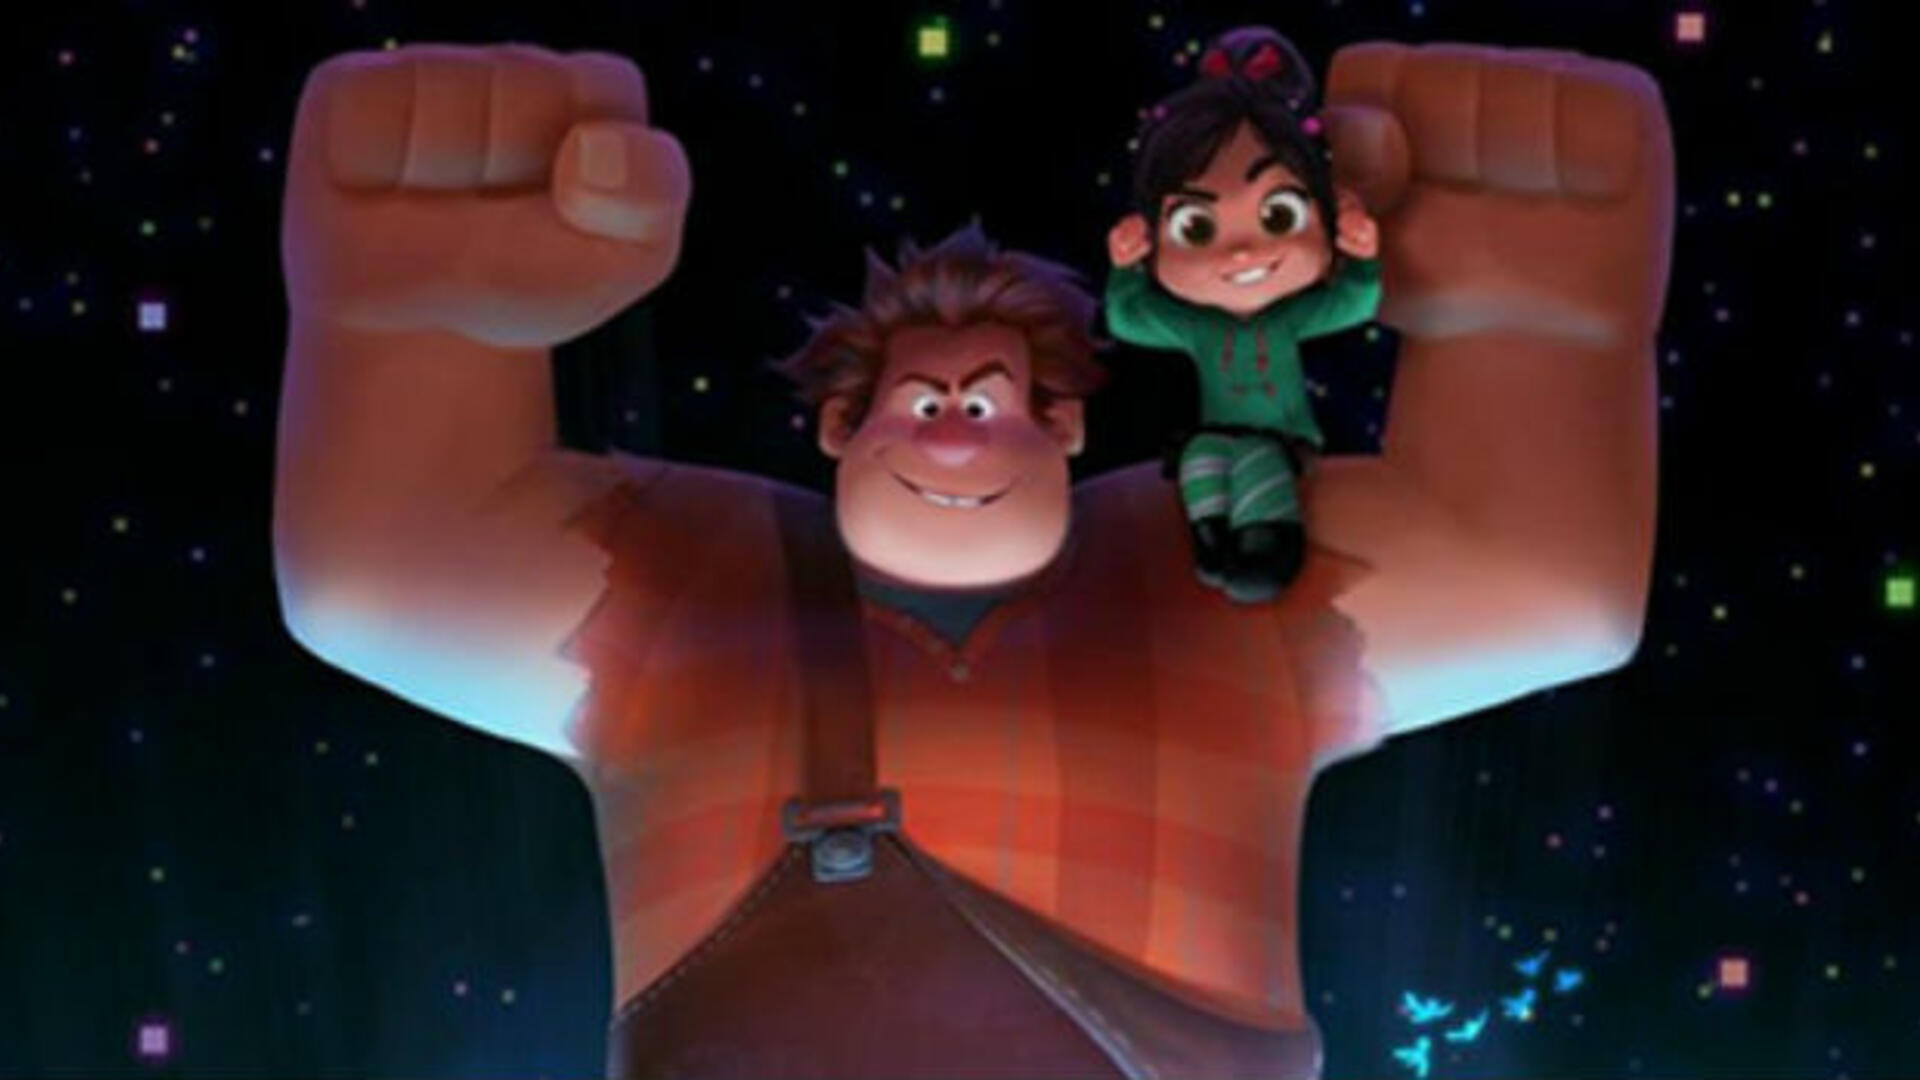 PUBG Gets a Nod in the Wreck-It Ralph 2 Trailer